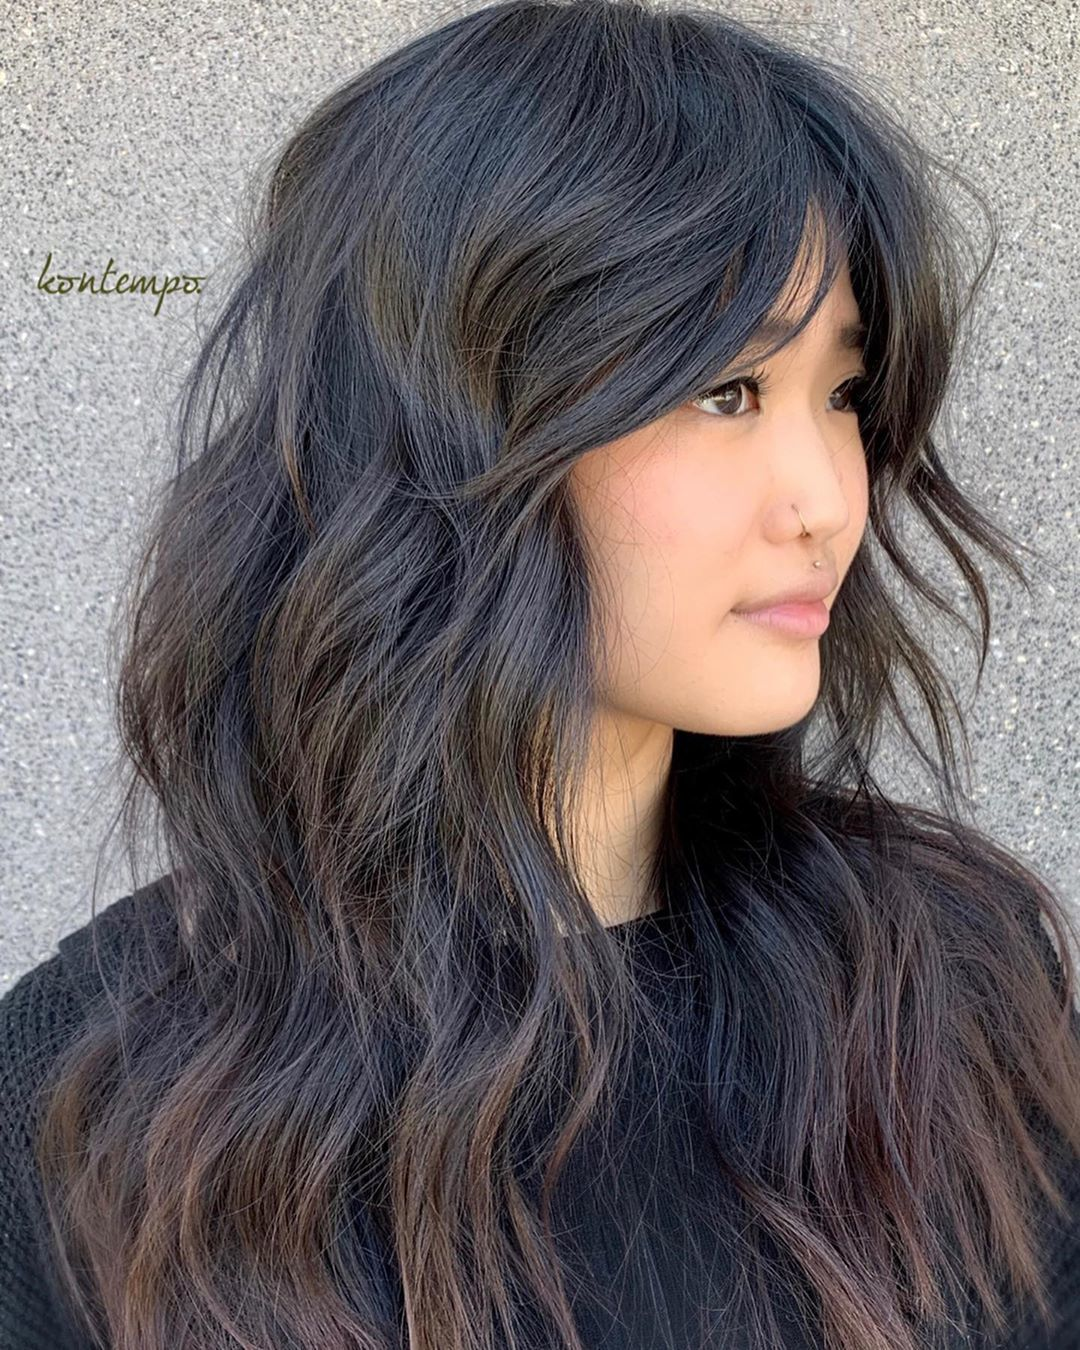 35 Trending Asian Hairstyles for Women 2020 Guide in ...